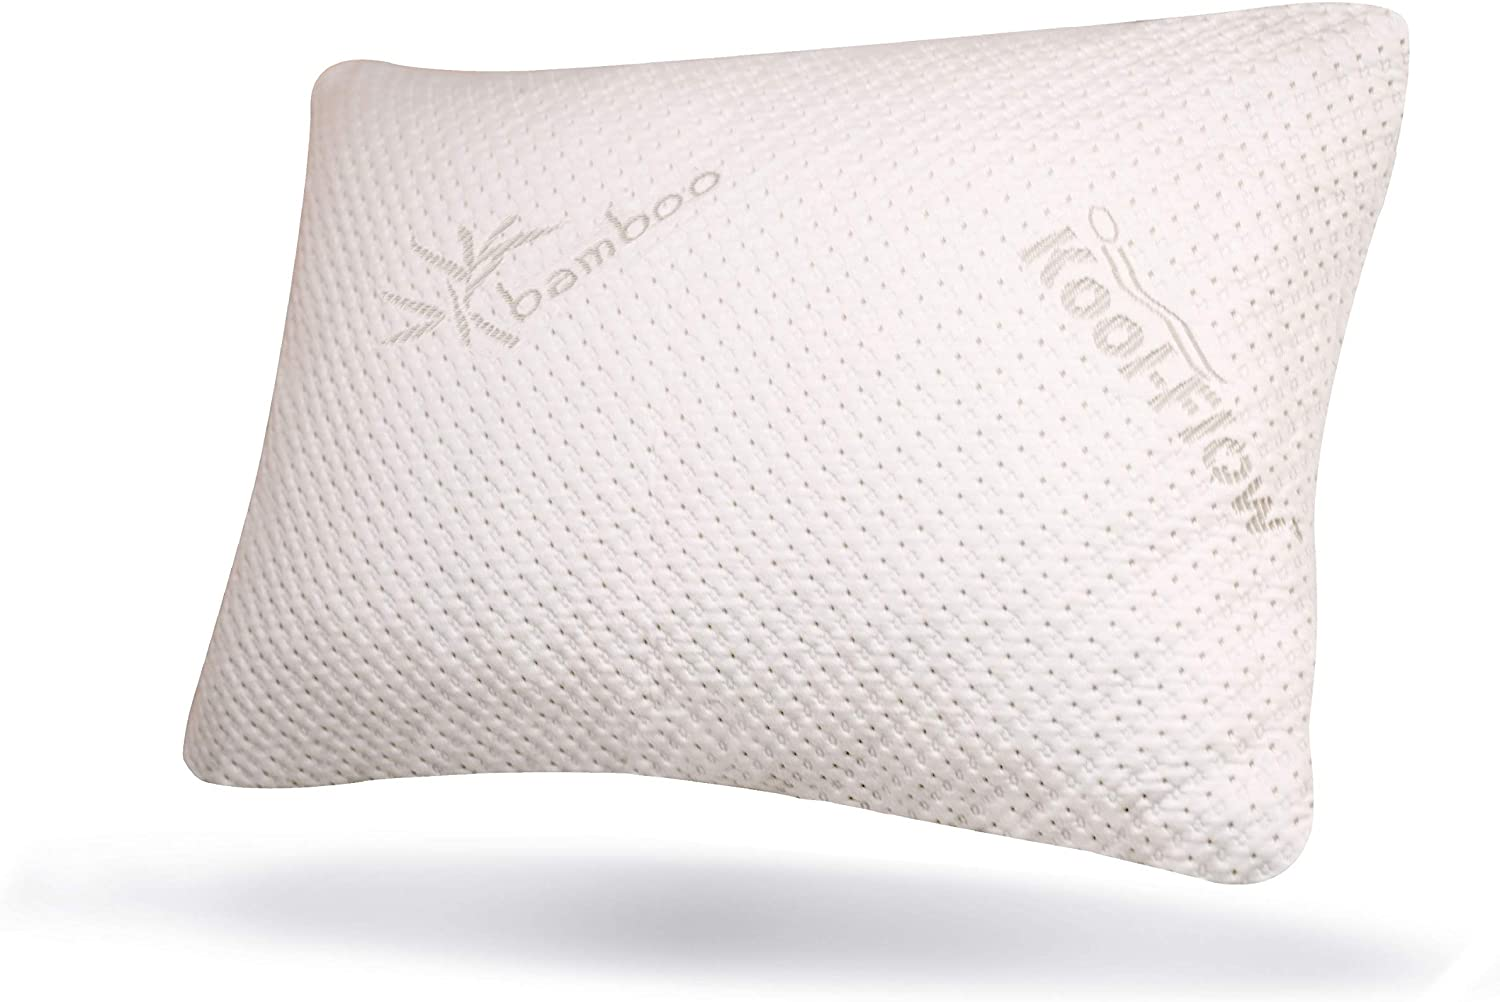 Neck pain is common and affects many people. Sleeping on any one of these pillows will change how you sleep.